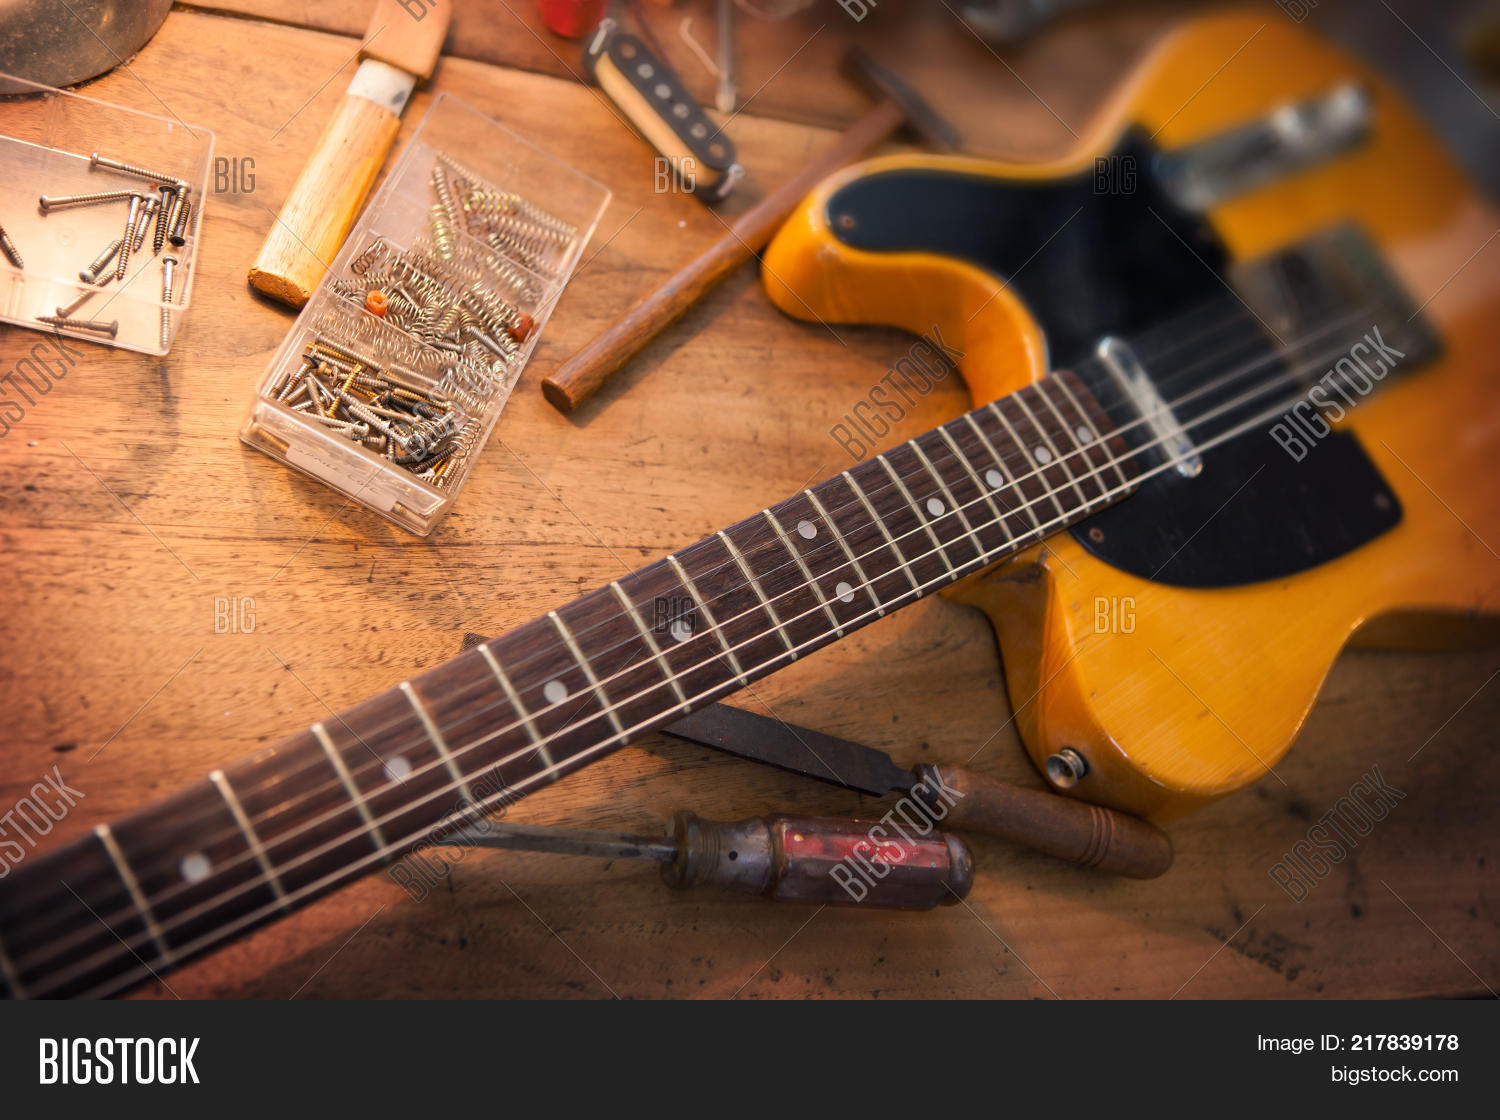 guitar repair image photo free trial bigstock. Black Bedroom Furniture Sets. Home Design Ideas